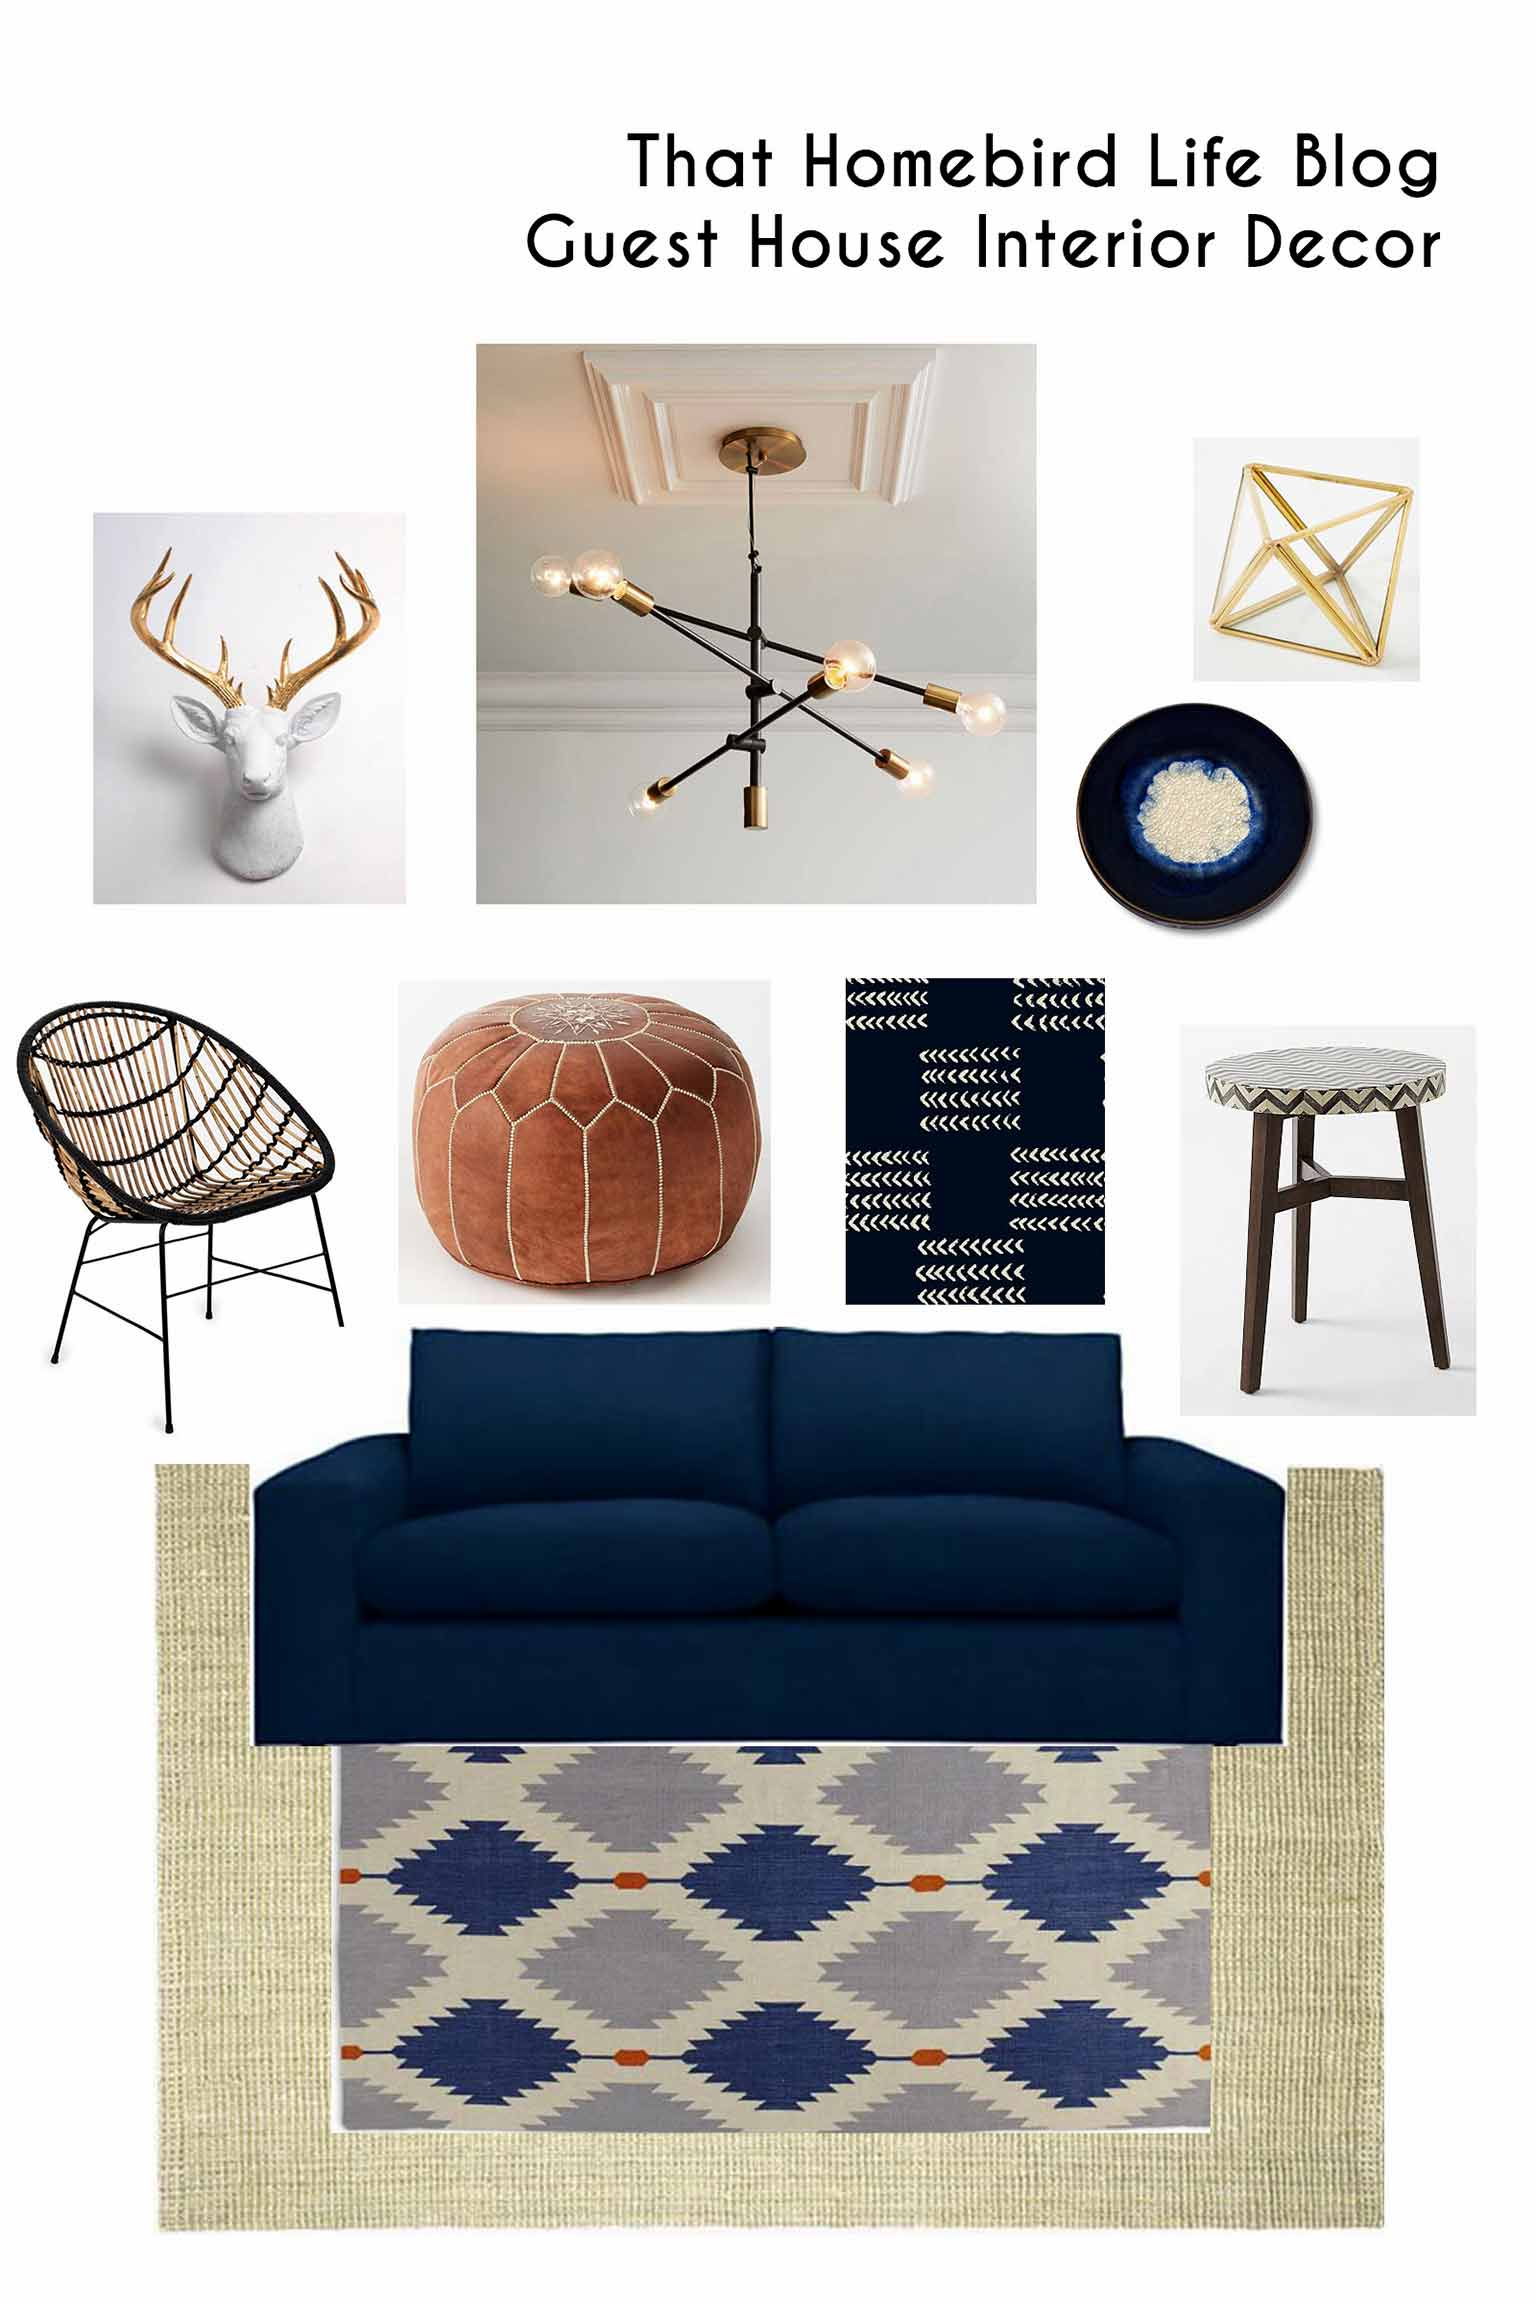 Guest house interior decor moodboard inspiration - That Homebird Life Blog